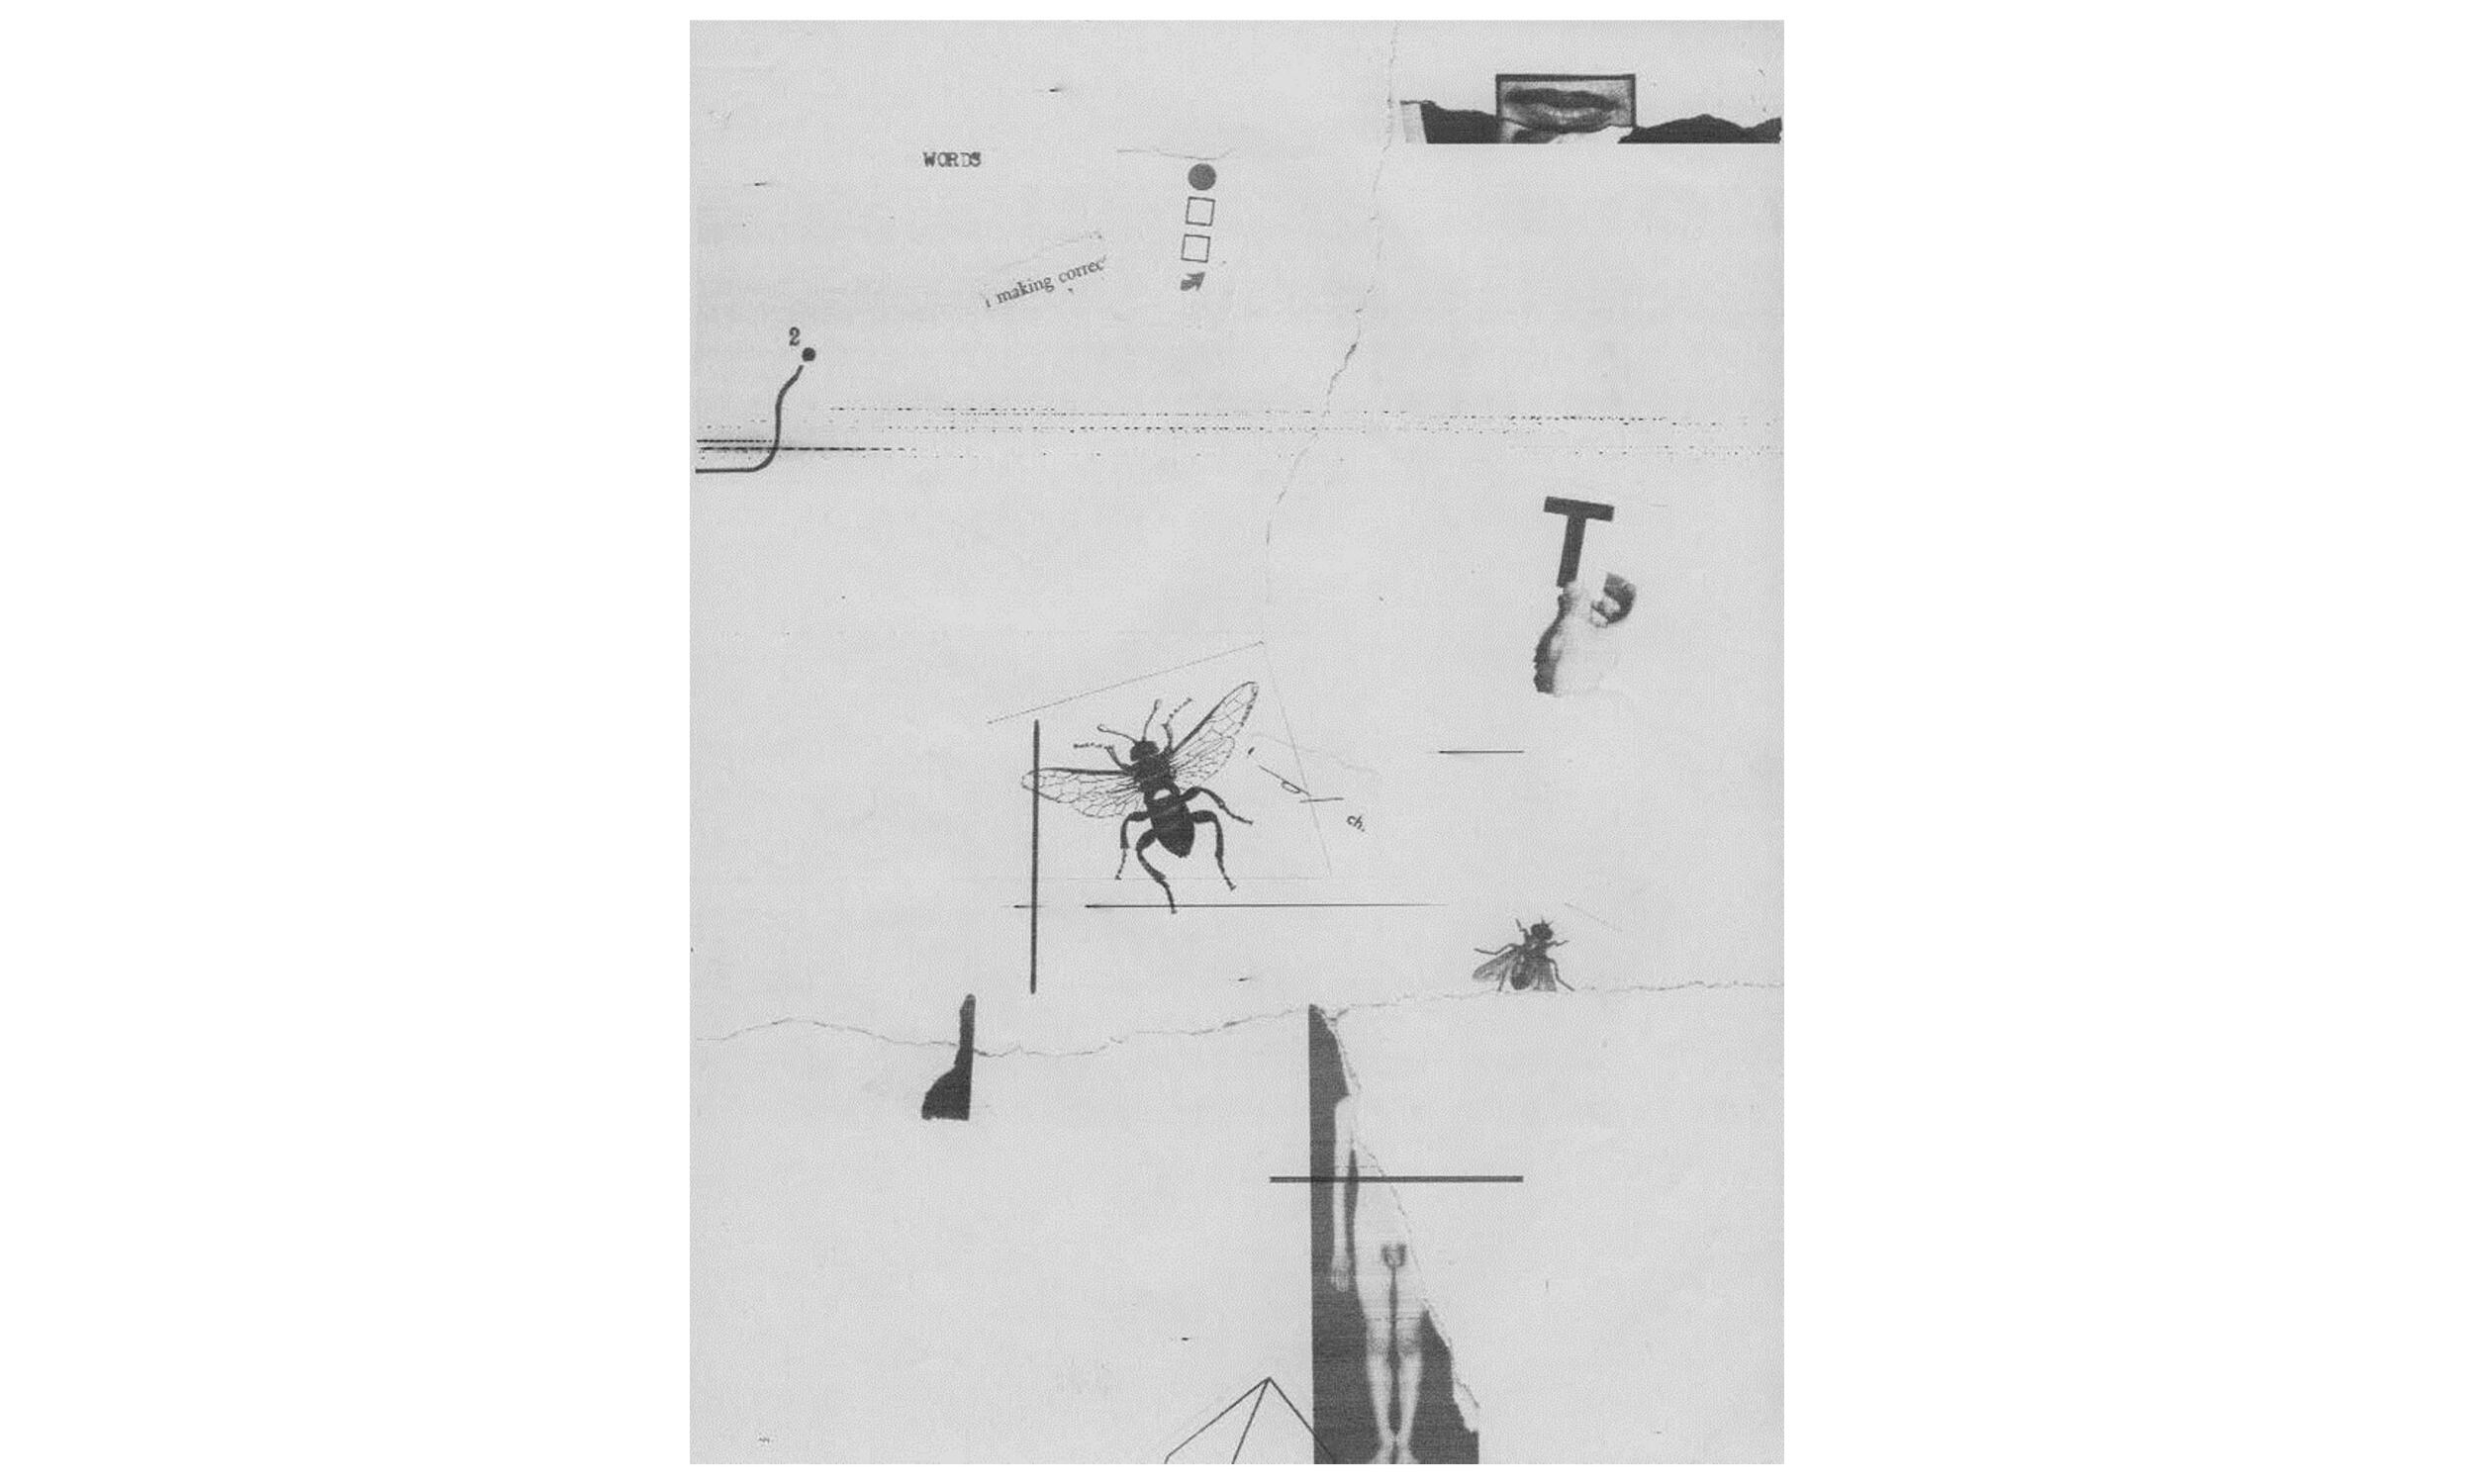 William Larson (American, b. 1942).  Untitled , September 22, 1975. Electro-carbon print with collage. 11 x 8 ½ in. (sheet). Carnegie Museum of Art, Pittsburgh; Director's Discretionary Fund, 2016.31.2. © William Larson. By permission.